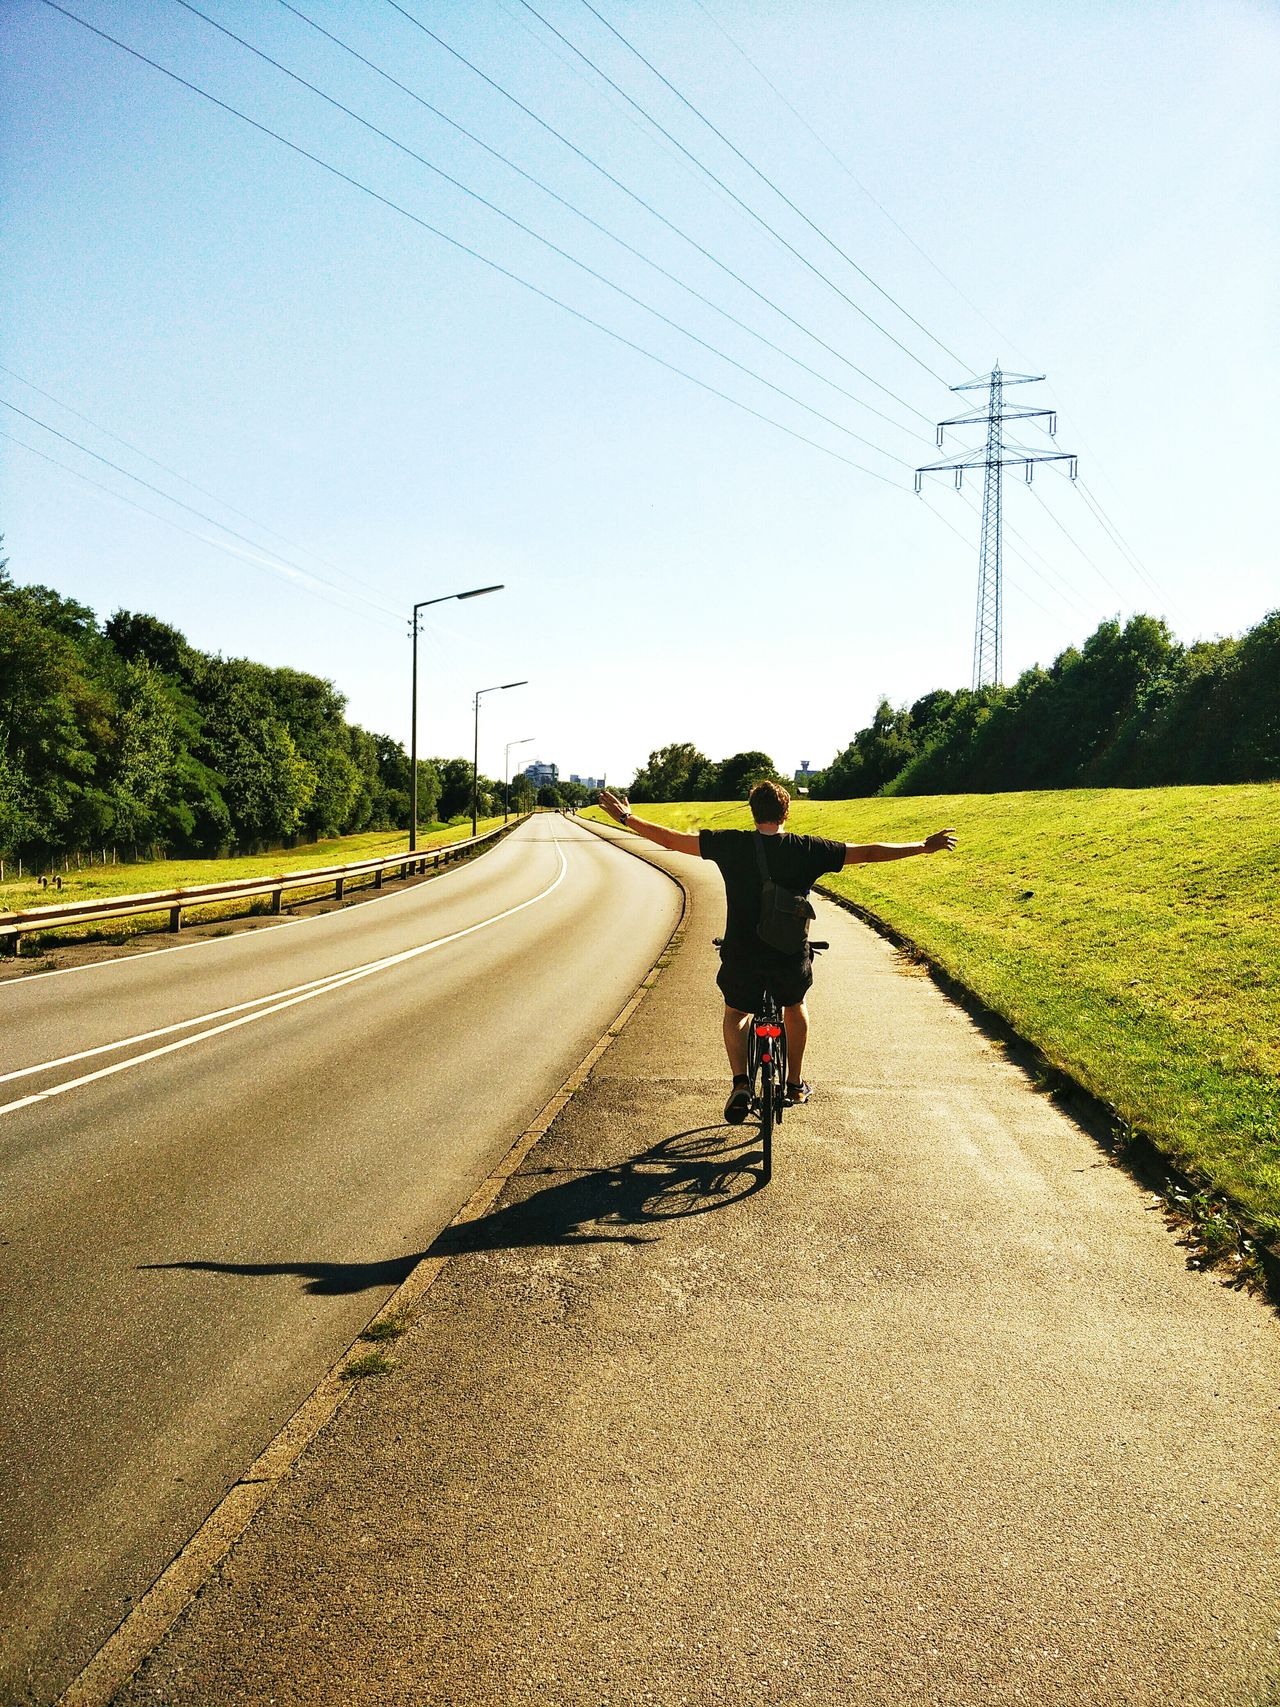 Hamburg Germany Bike Tour Clear Sky Full Length Electricity Pylon Road Shadow Tree Power Line  The Way Forward Blue Day Cable Power Cable Outdoors Diminishing Perspective Casual Clothing Vanishing Point Countryside Sky Person Miles Away